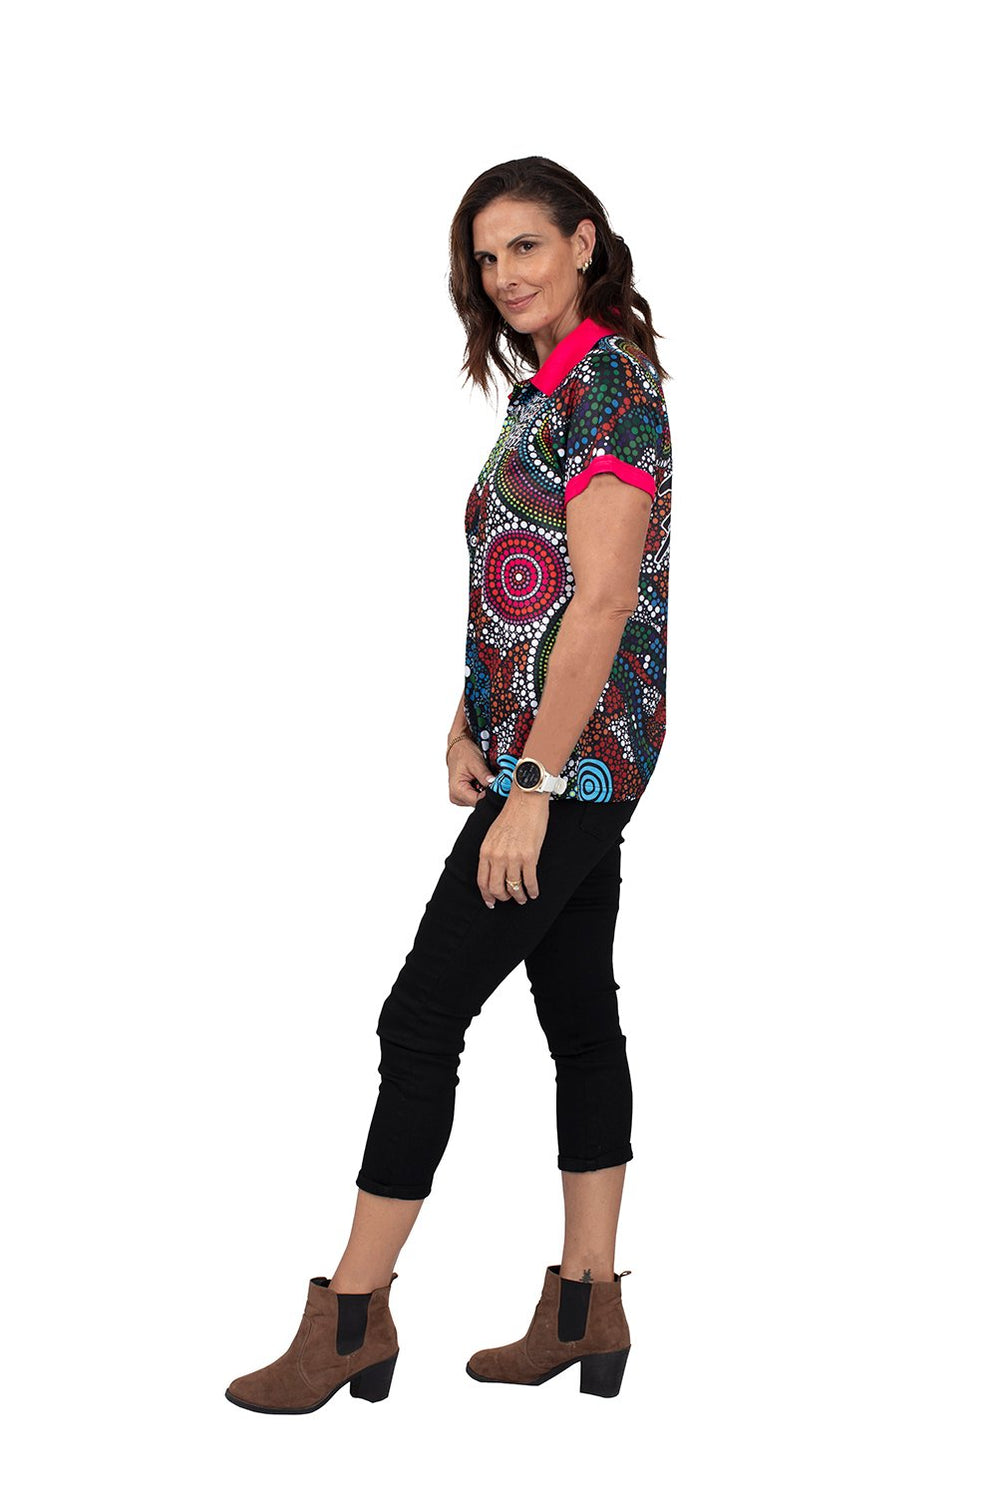 Wagual (Rainbow Serpent) Women's Polo